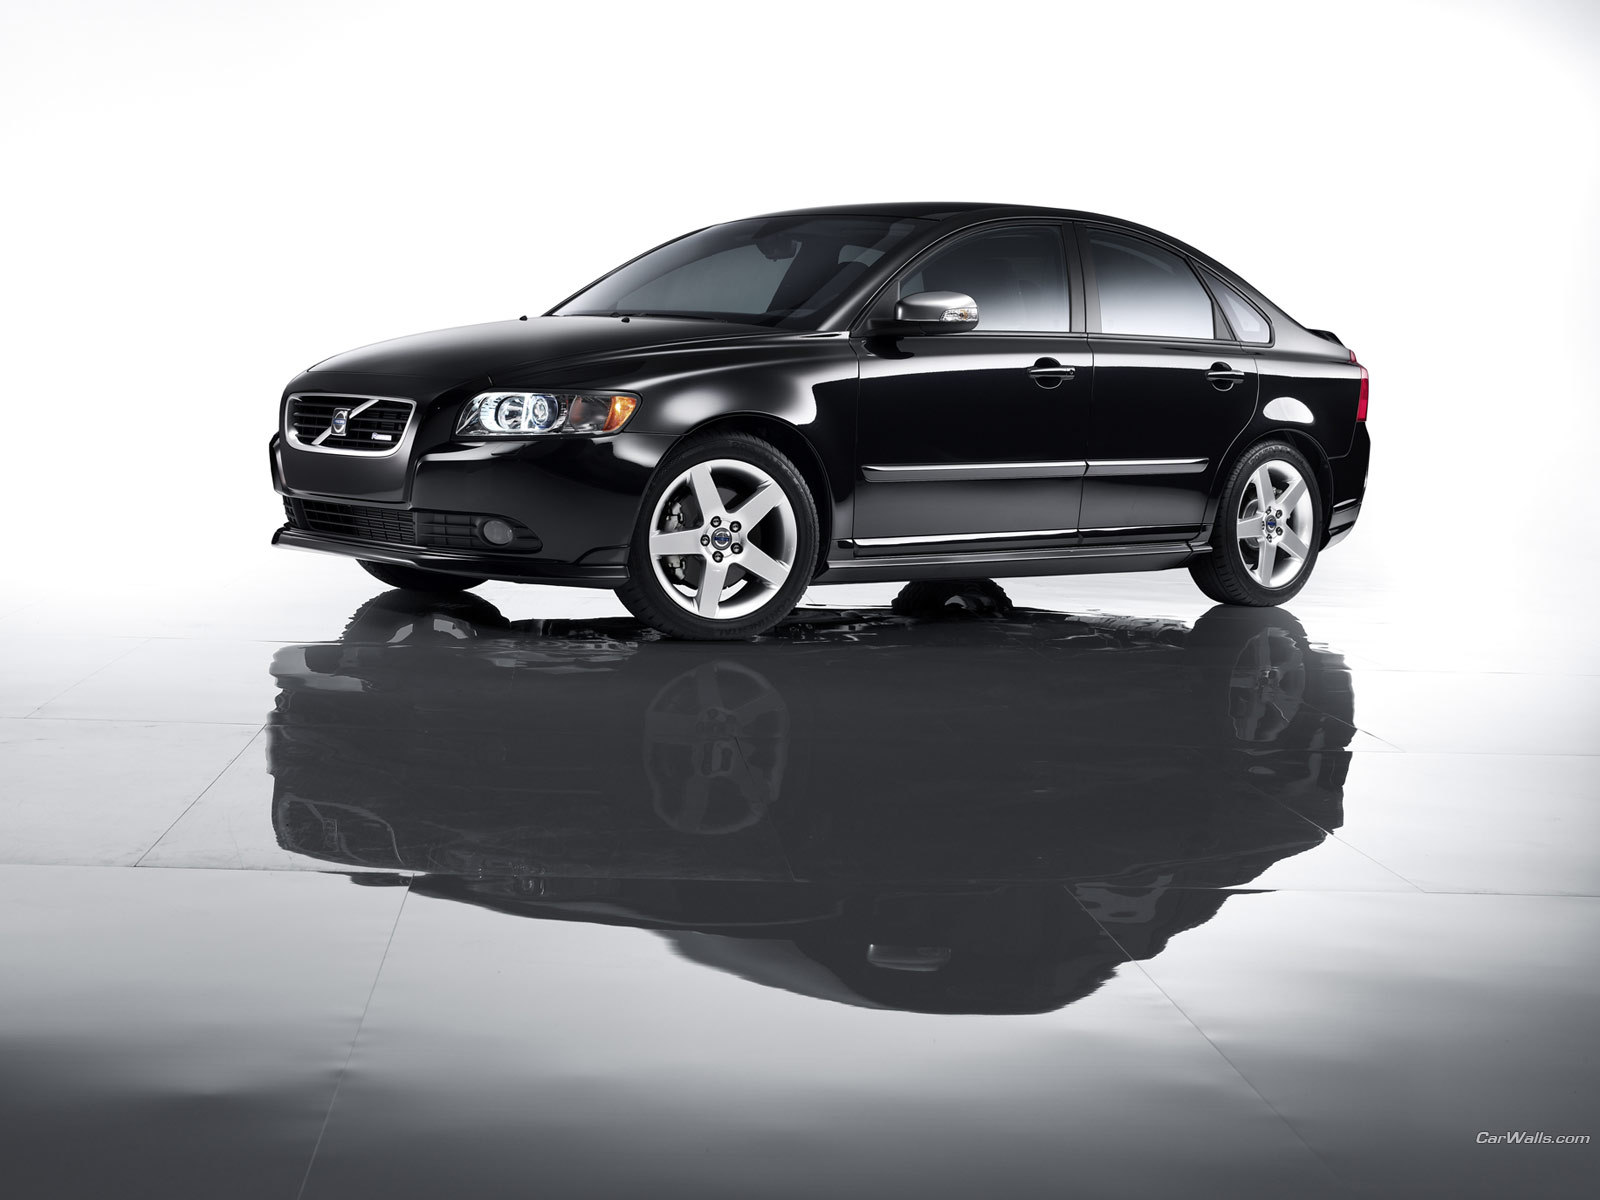 Volvo images S40 R design HD wallpaper and background photos 888231 1600x1200